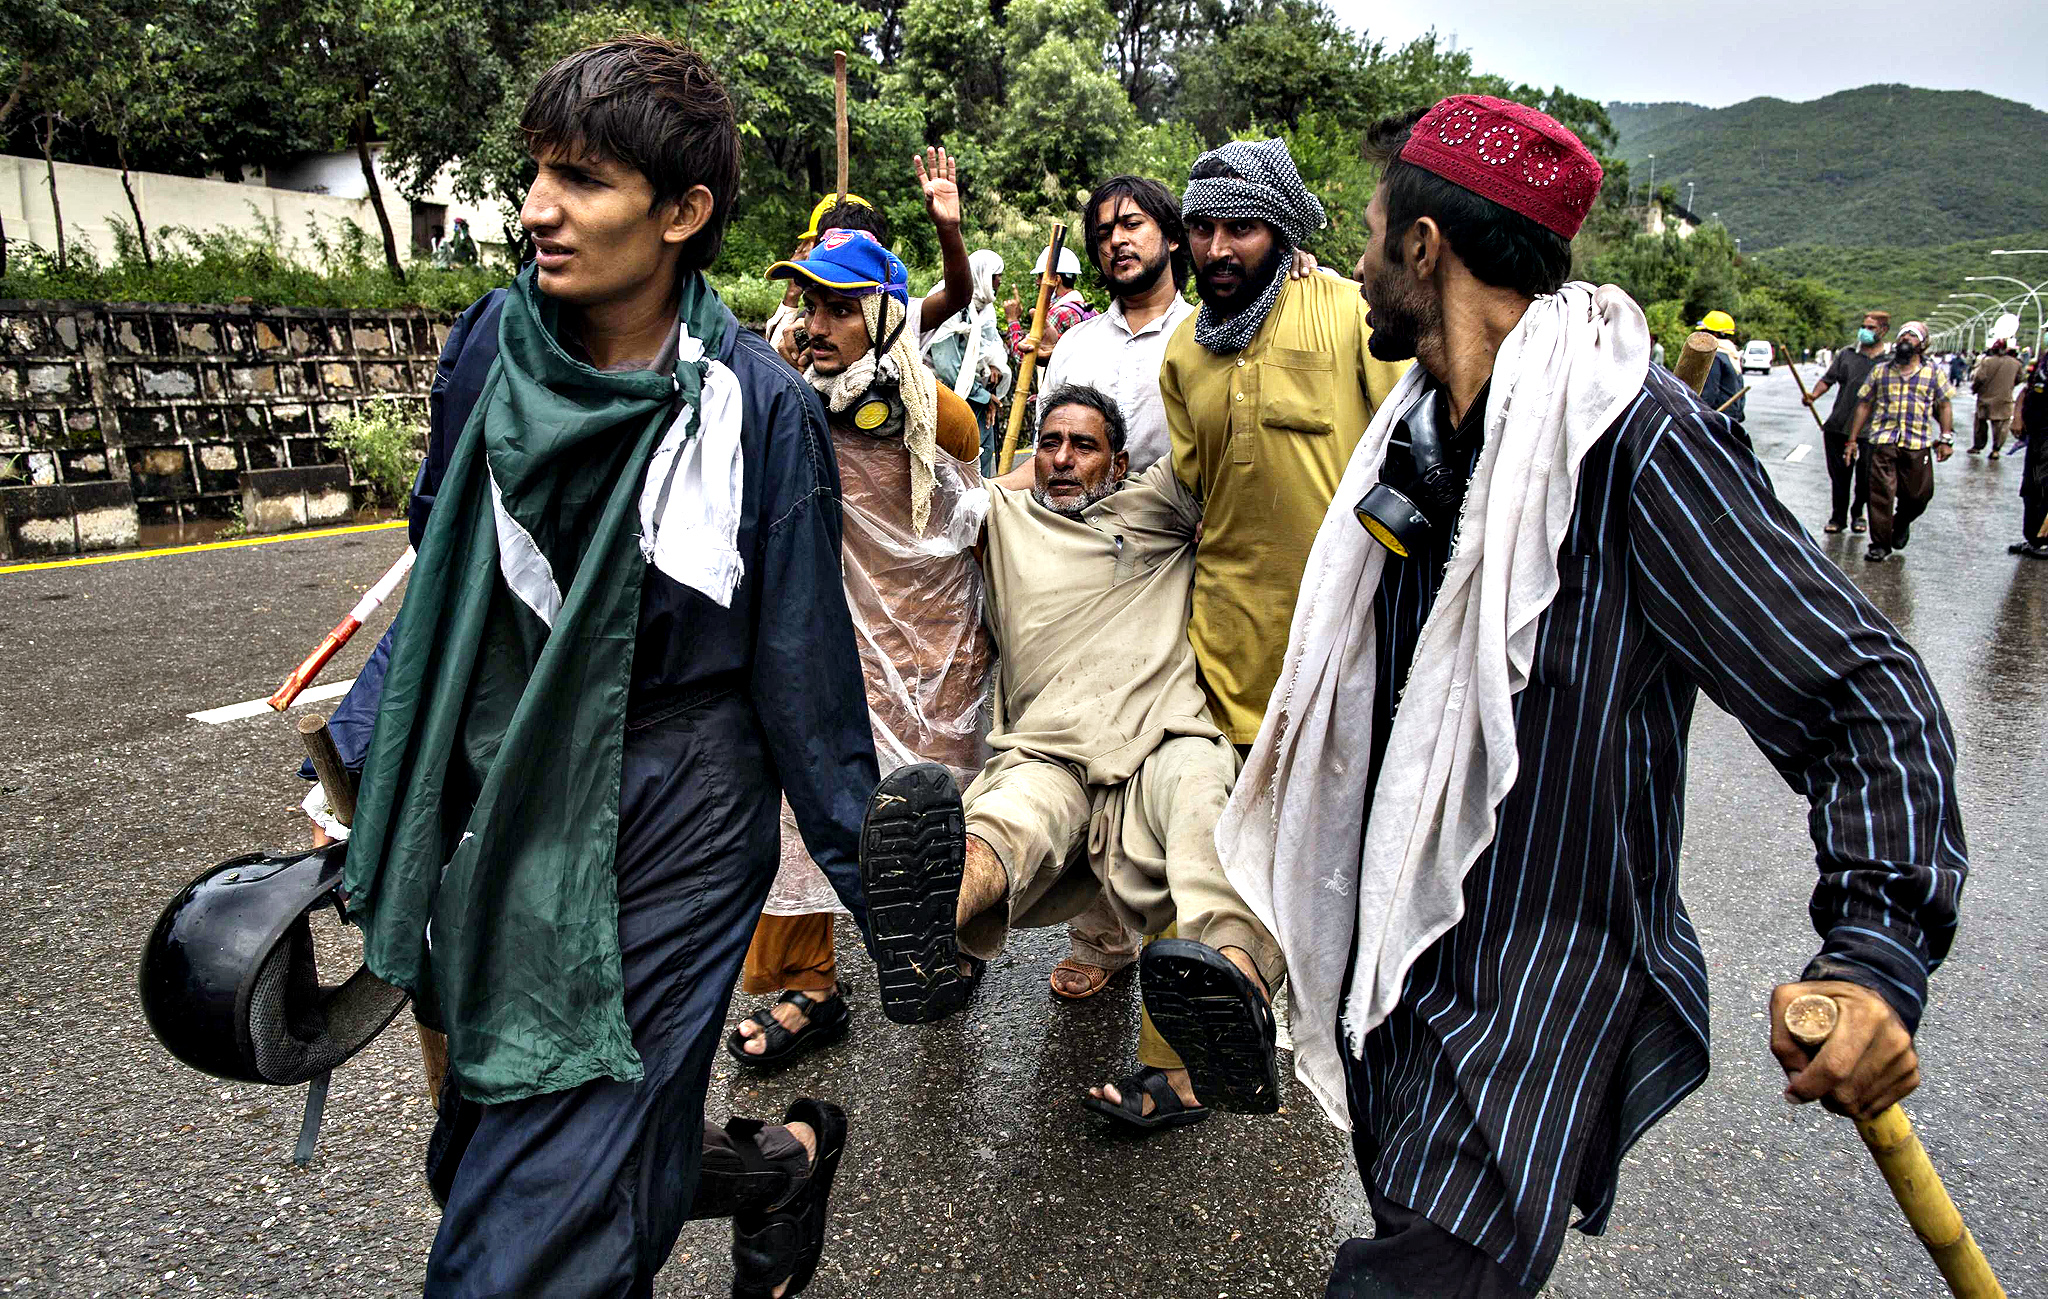 Supporters of Tahir ul-Qadri, a Sufi cleric and leader of Pakistan Awami Tehreek (PAT) party, help a fellow supporter who is injured, during the Revolution March in Islamabad September 1, 2014. Pakistani soldiers and paramilitary forces entered the headquarters of the state television channel PTV in Islamabad on Monday after a crowd of protesters stormed the building and took the channel off the air. Protesters led by opposition leaders Imran Khan, a hero cricket player turned politician, and ul-Qadri, a firebrand cleric, have been on the streets for weeks trying to bring down the government of Prime Minister Nawaz Sharif.